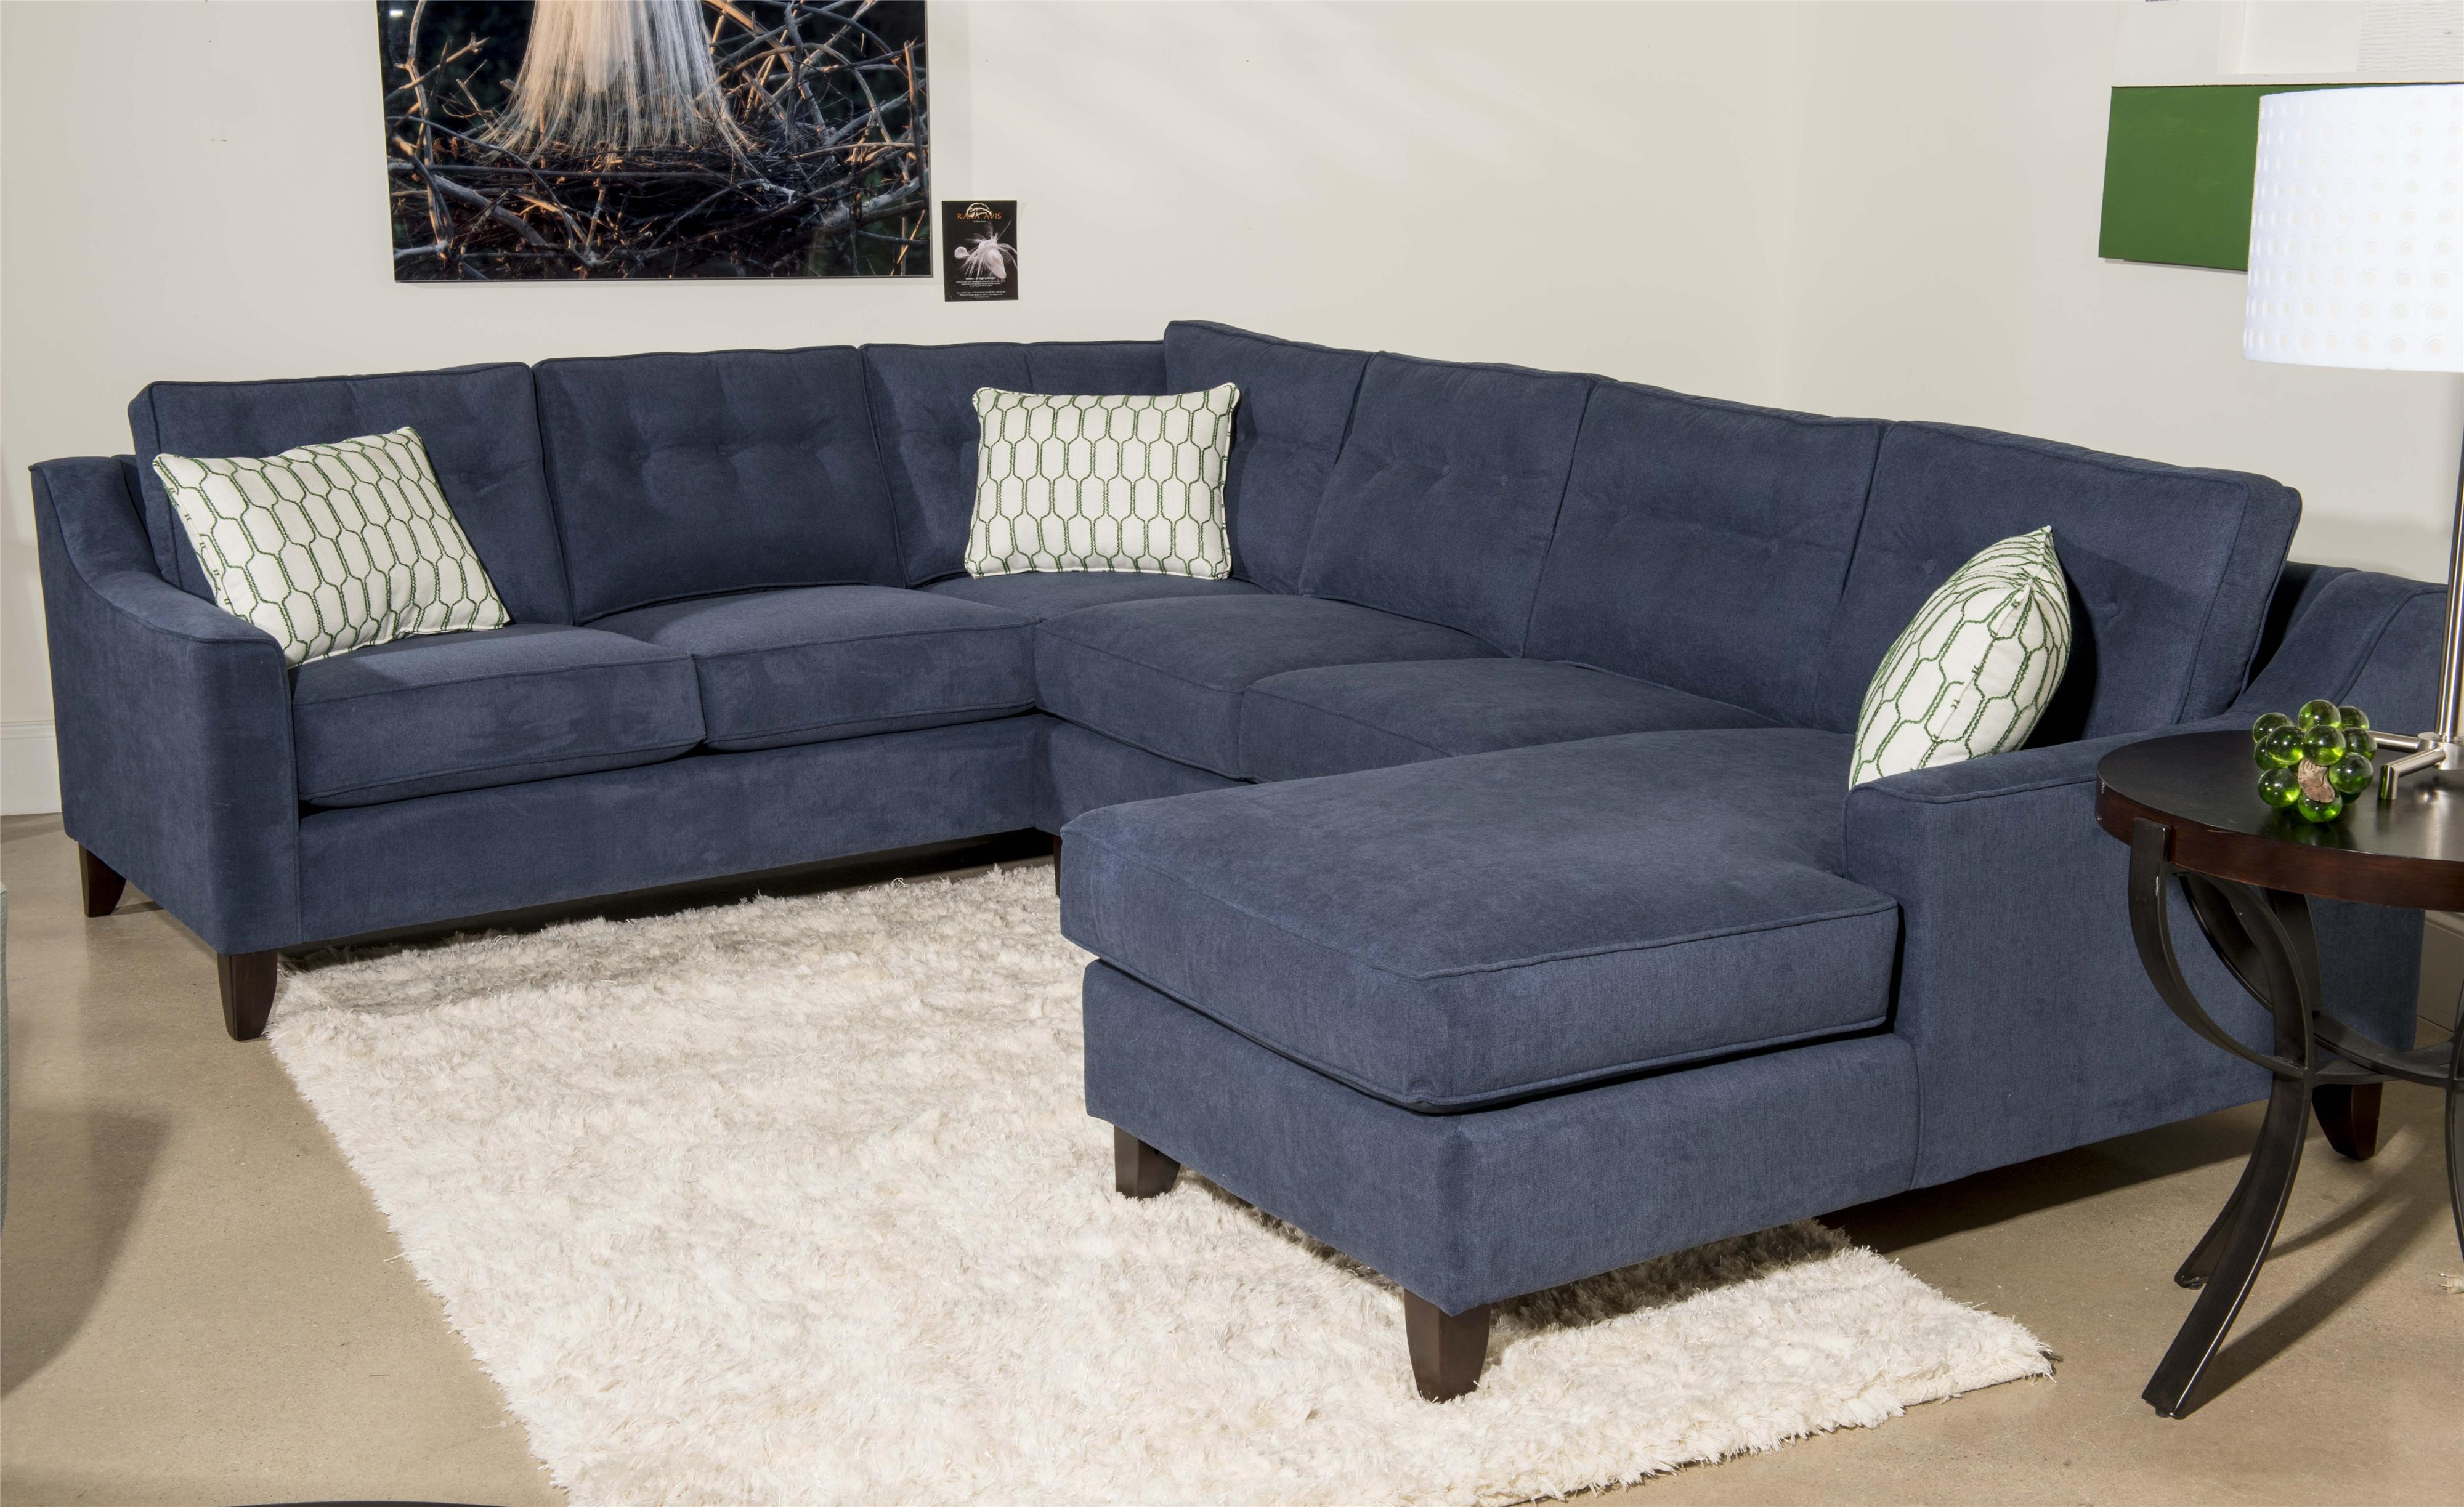 Klaussner Audrina Contemporary 3 Piece Sectional Sofa With Chaise Inside 3 Piece Sectional Sofa Slipcovers (Image 9 of 15)